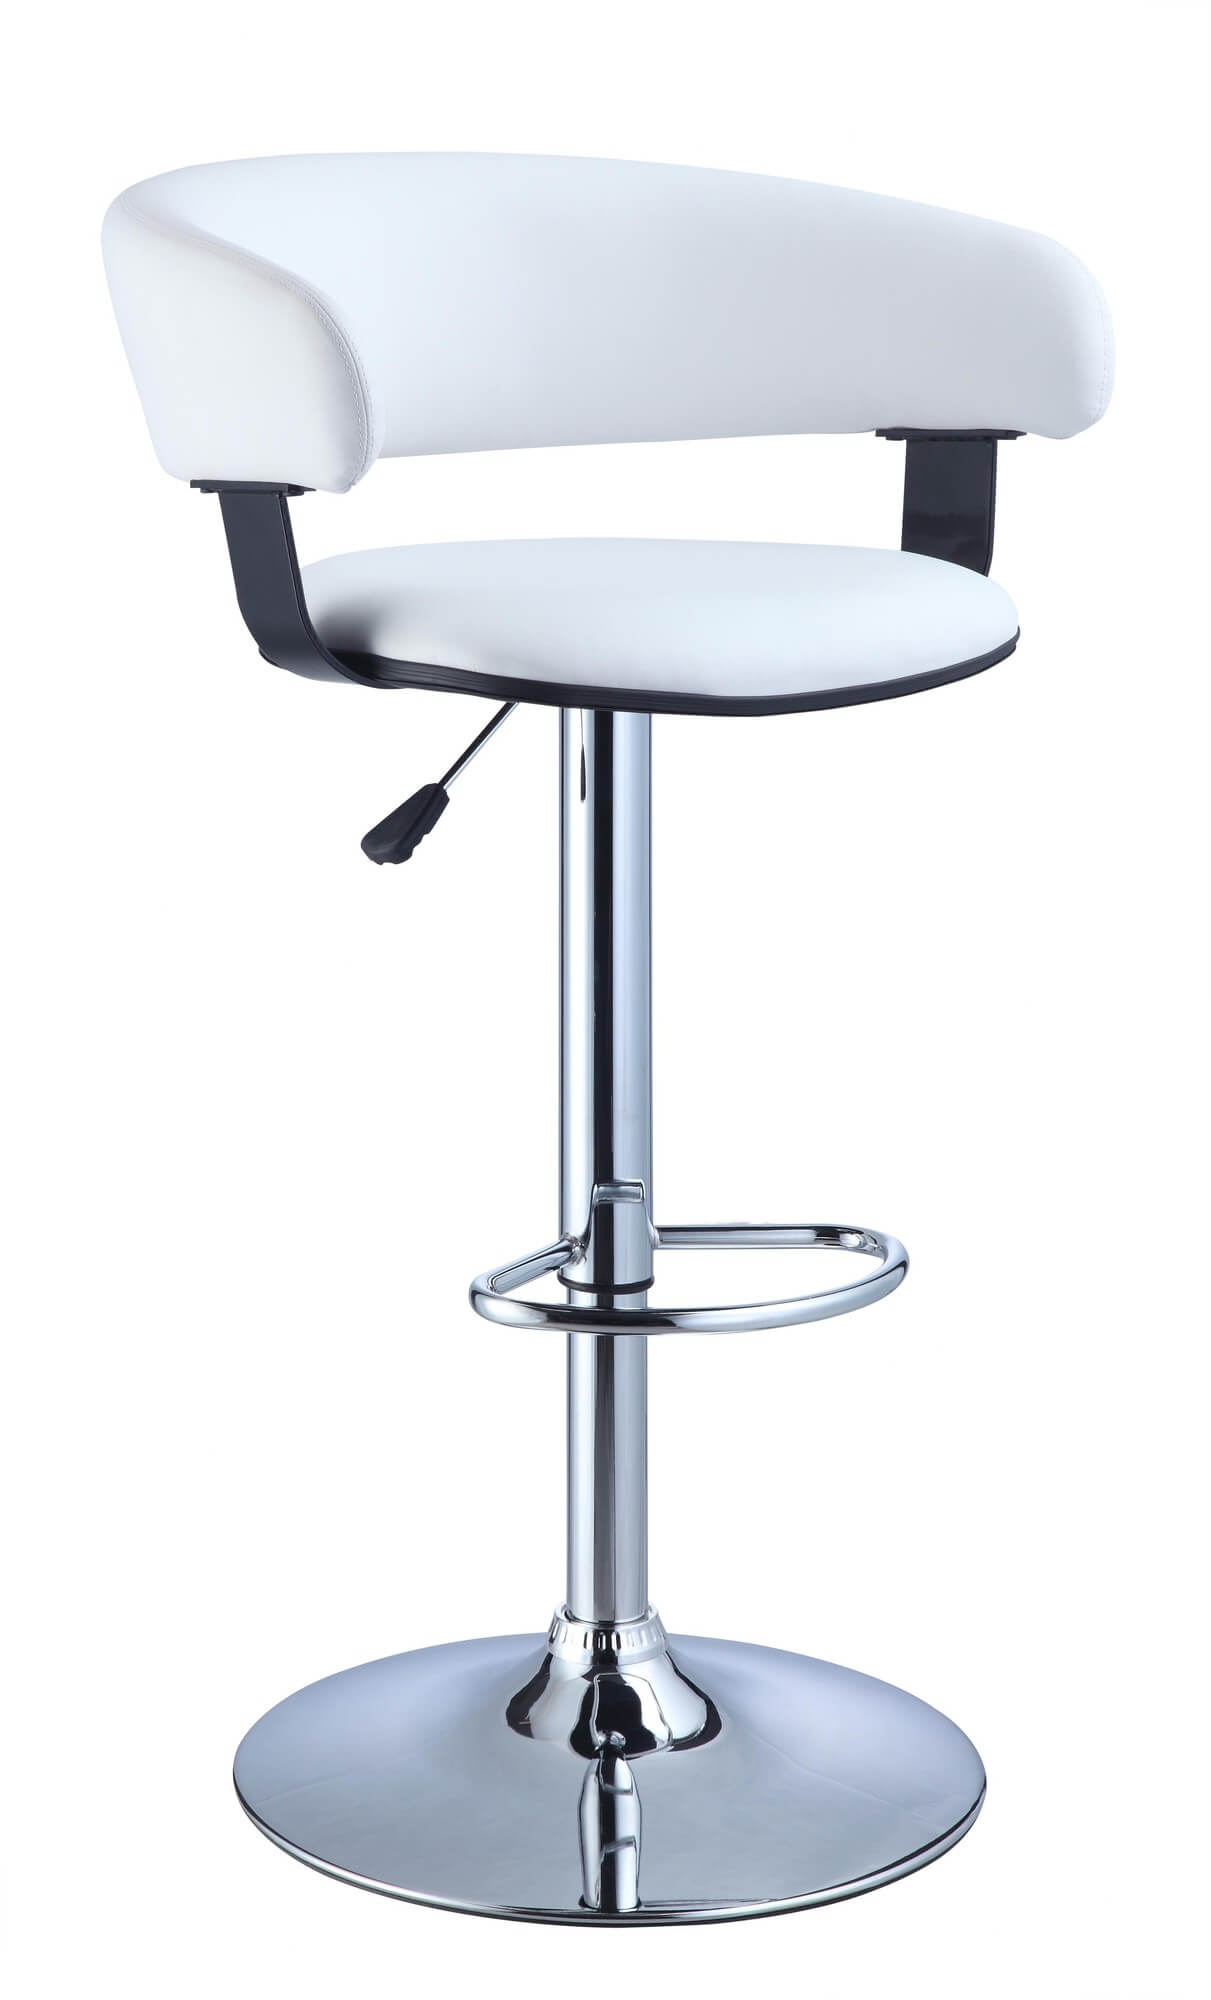 This white modern stool is designed with a contoured back that wraps around the occupant providing recessed arms as well. The upholstery is white faux leather.